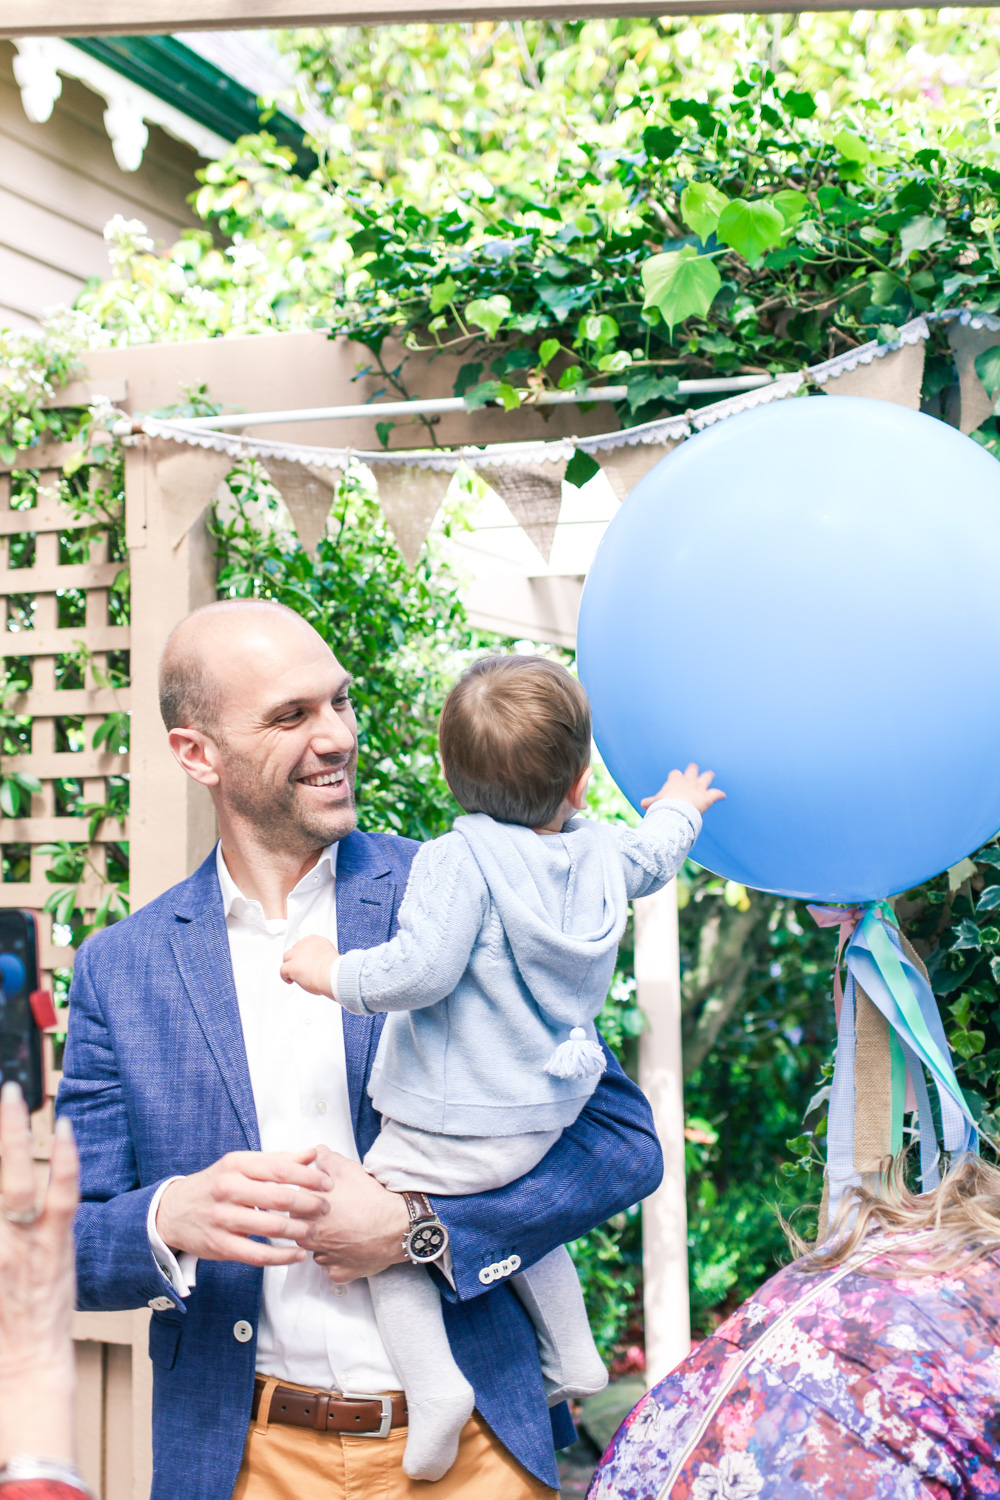 Giant blue balloon with ribbons and Peter Rabbit themed first birthday party